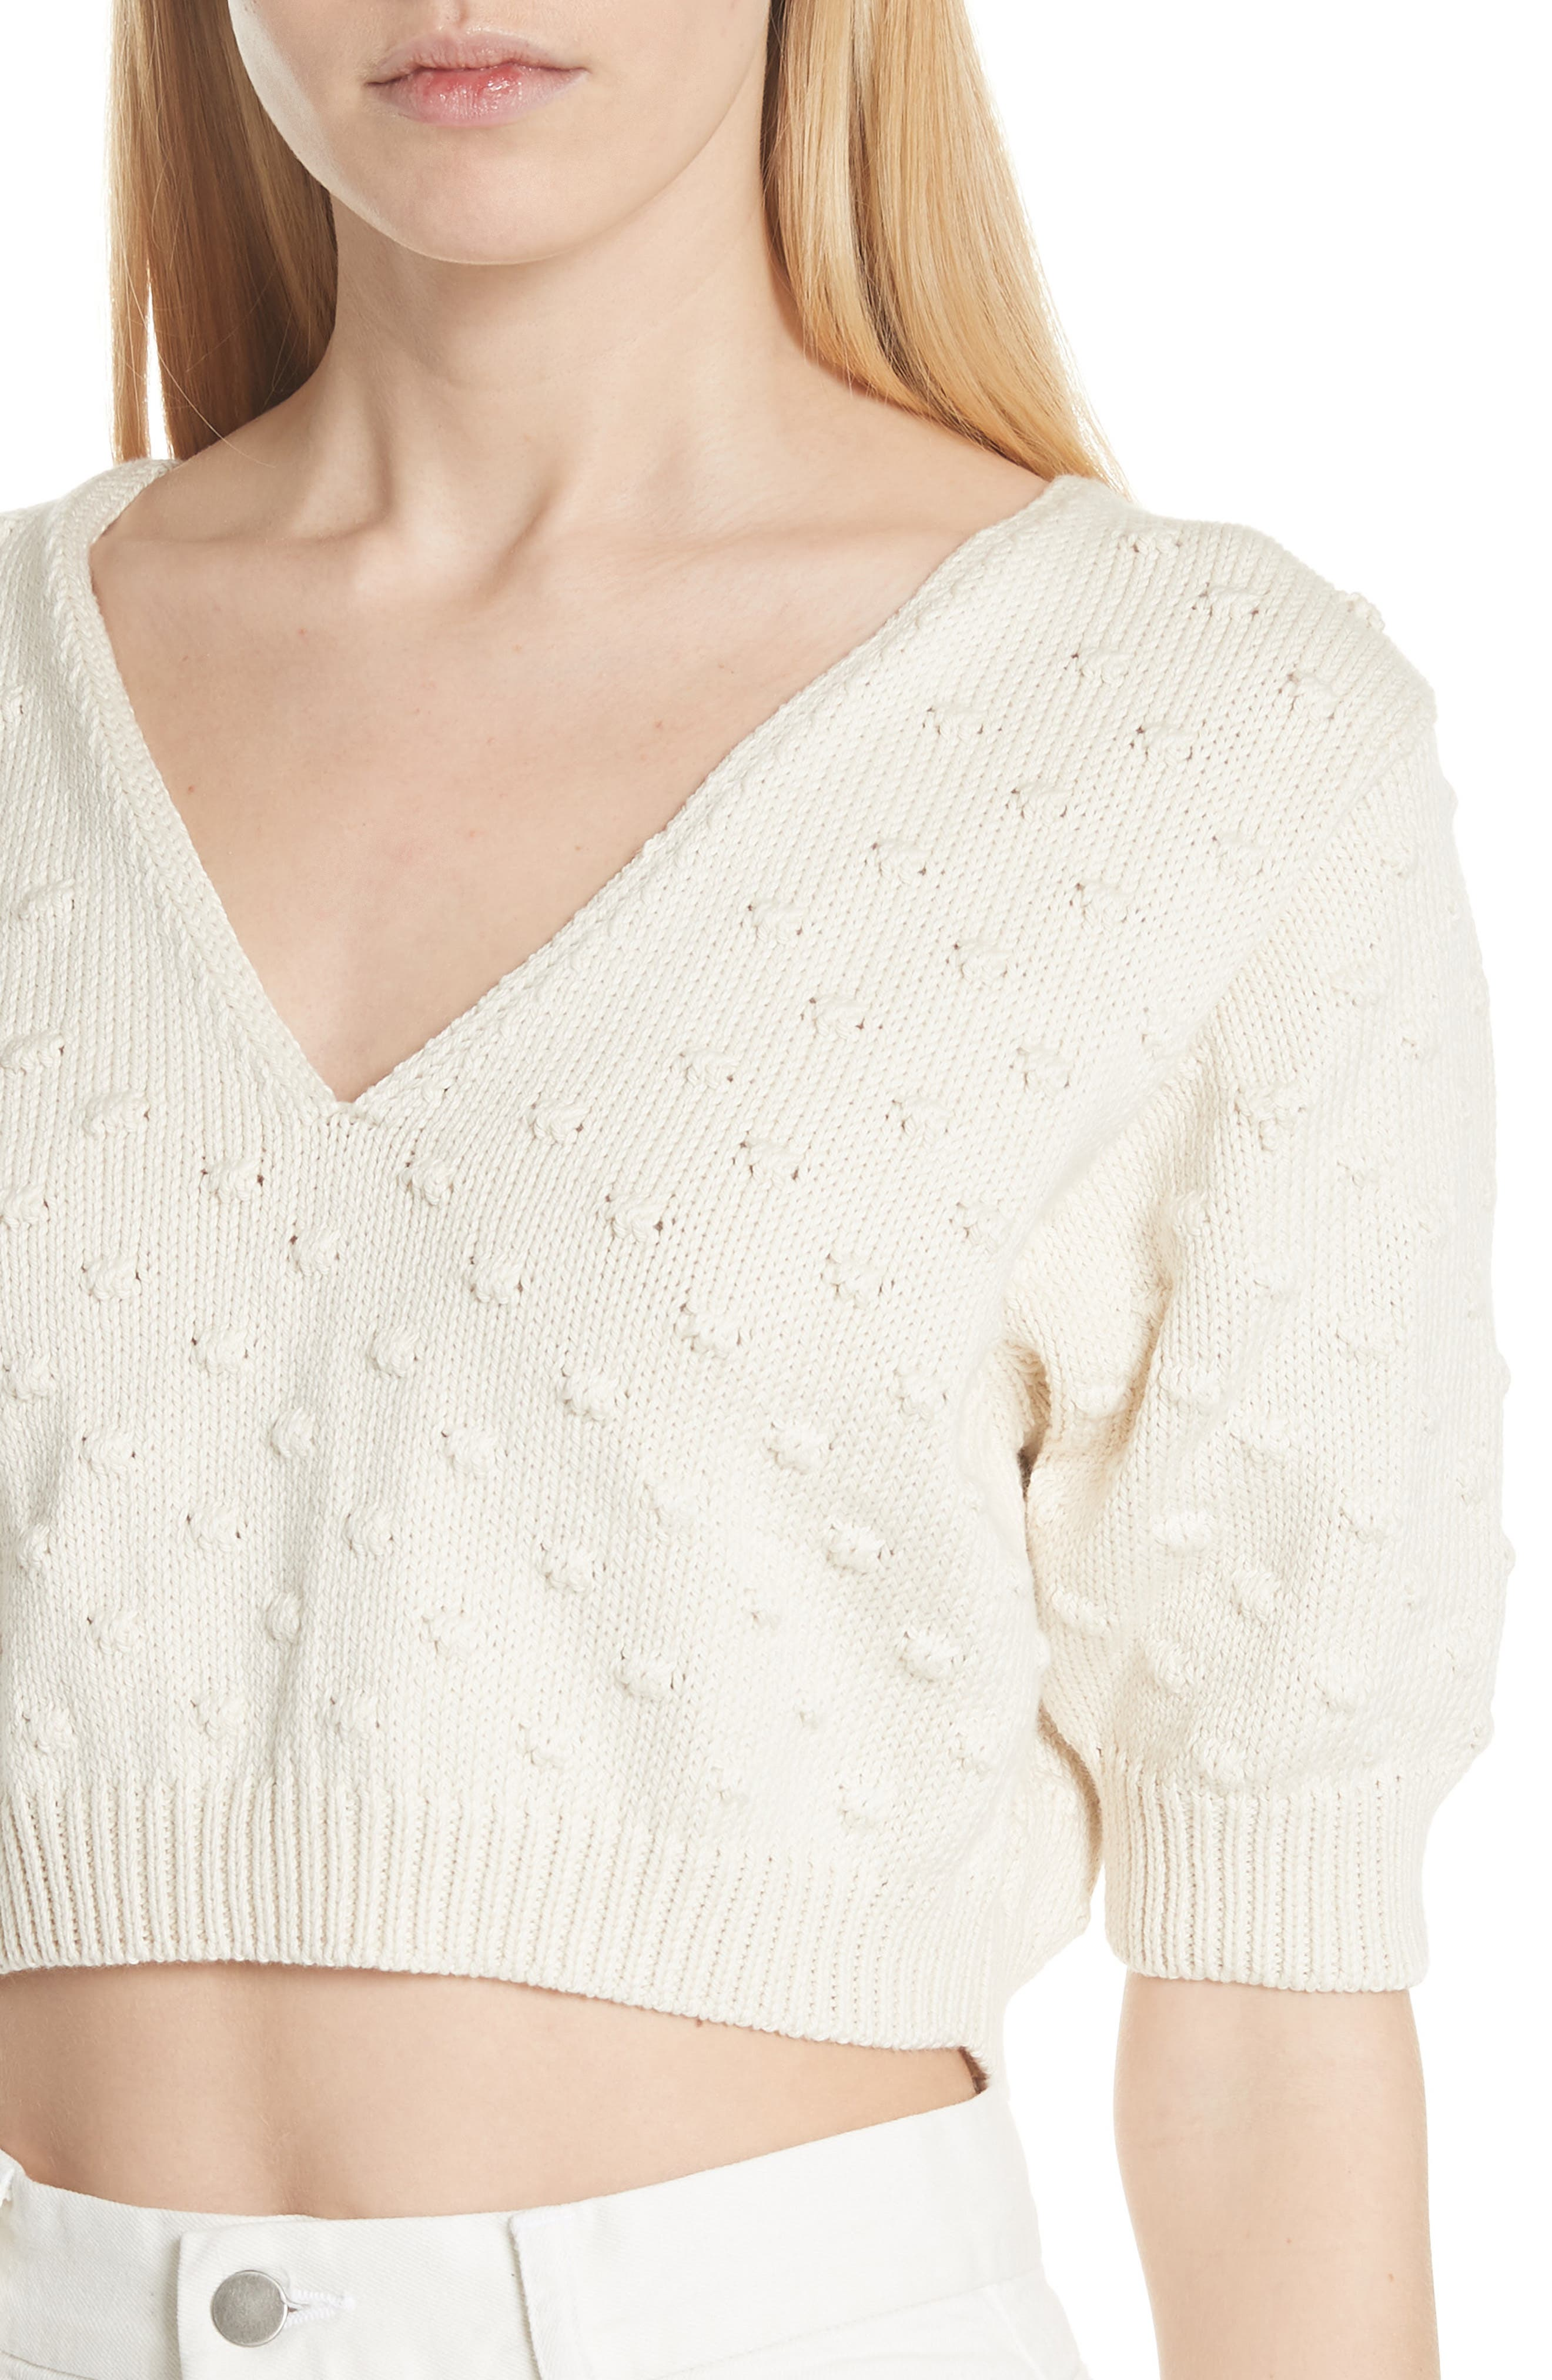 Ode Garbanzo Knit Crop Sweater,                             Alternate thumbnail 4, color,                             Ivory